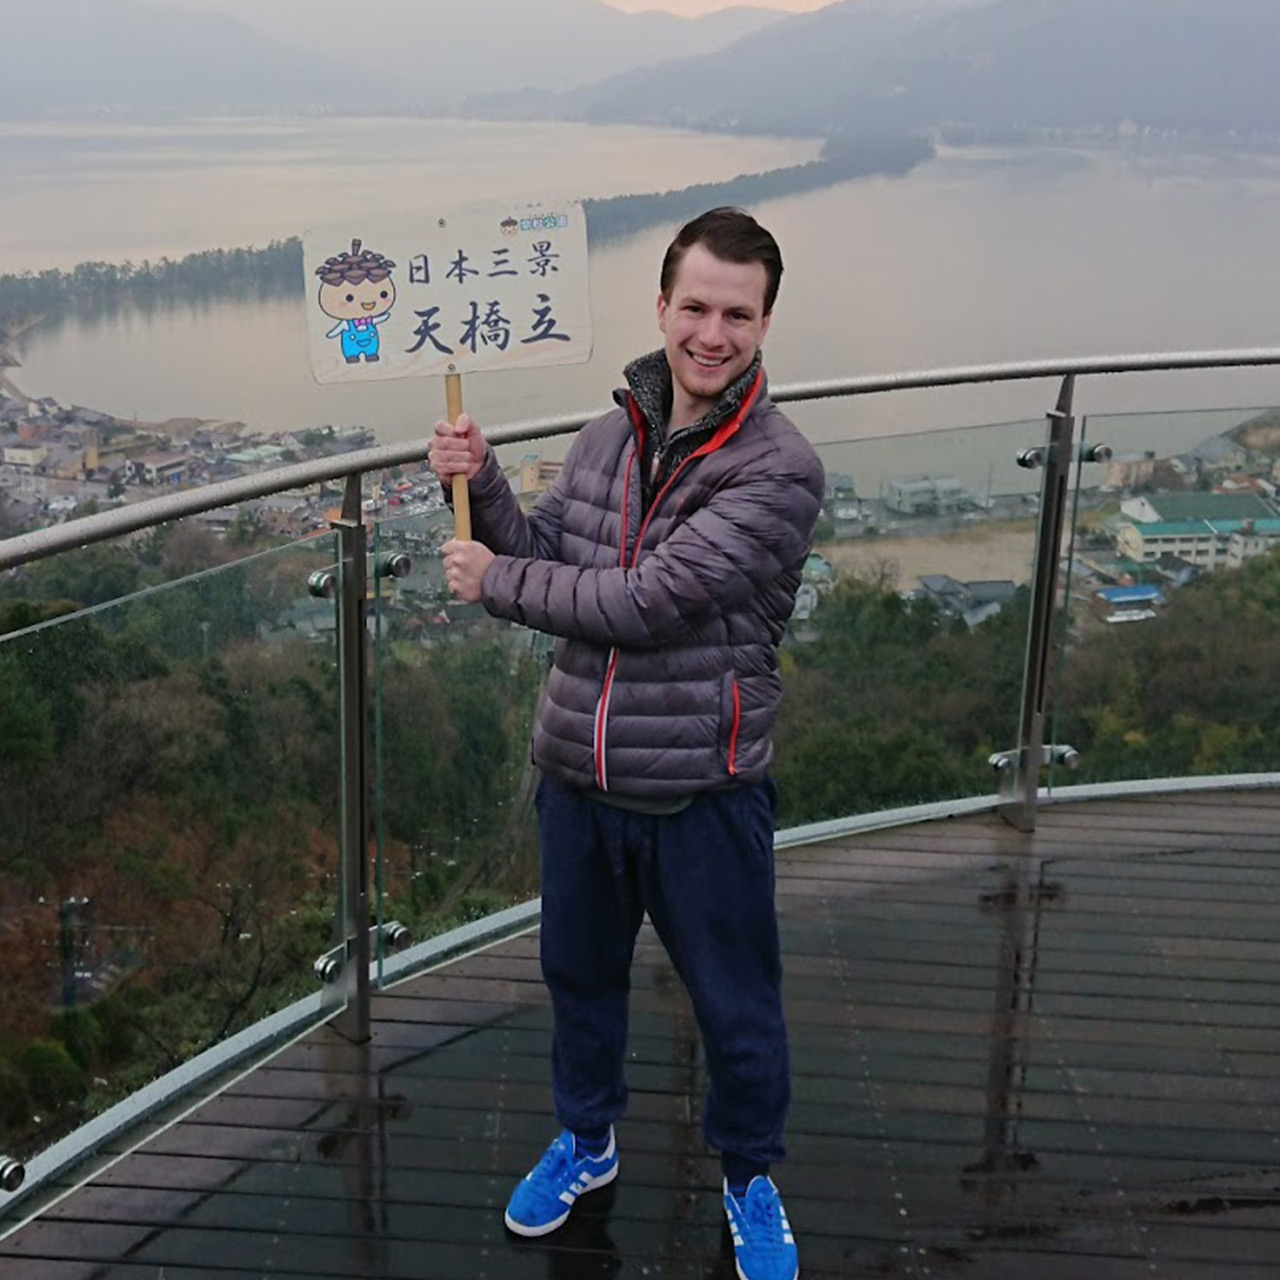 Picture of me in Japan with Amanohashidate in the background.